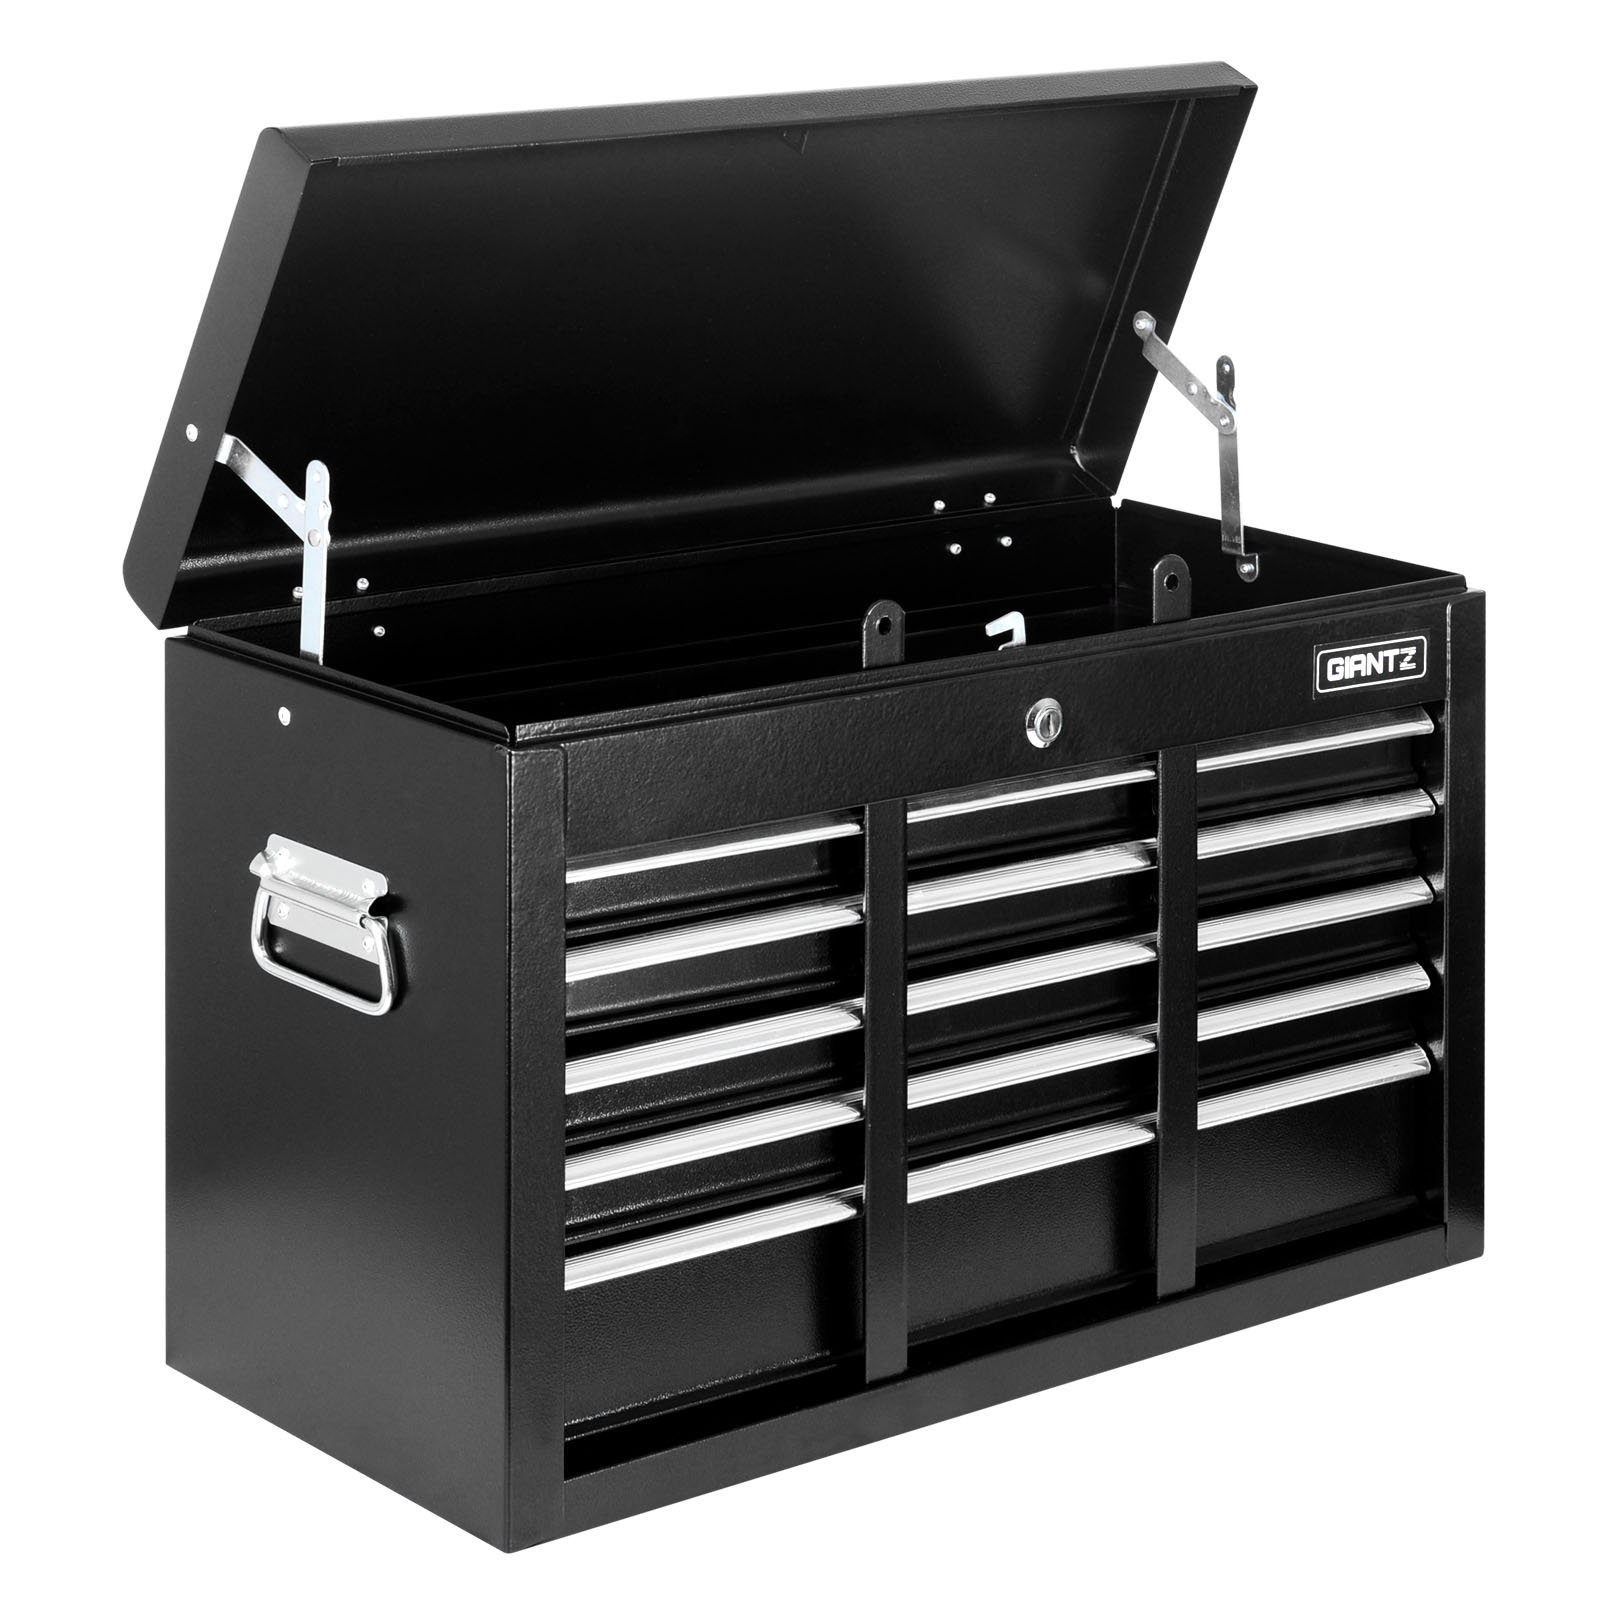 9 Drawers Tool Box Chest Black also Better 2016 Brand Names Massage Chair 2017319256 likewise Bassangler moreover 5 Ce Al Plastic Zipper 0231 11b besides Italian Military Uniform Clothing Of Military 746089527. on durable chest with lock